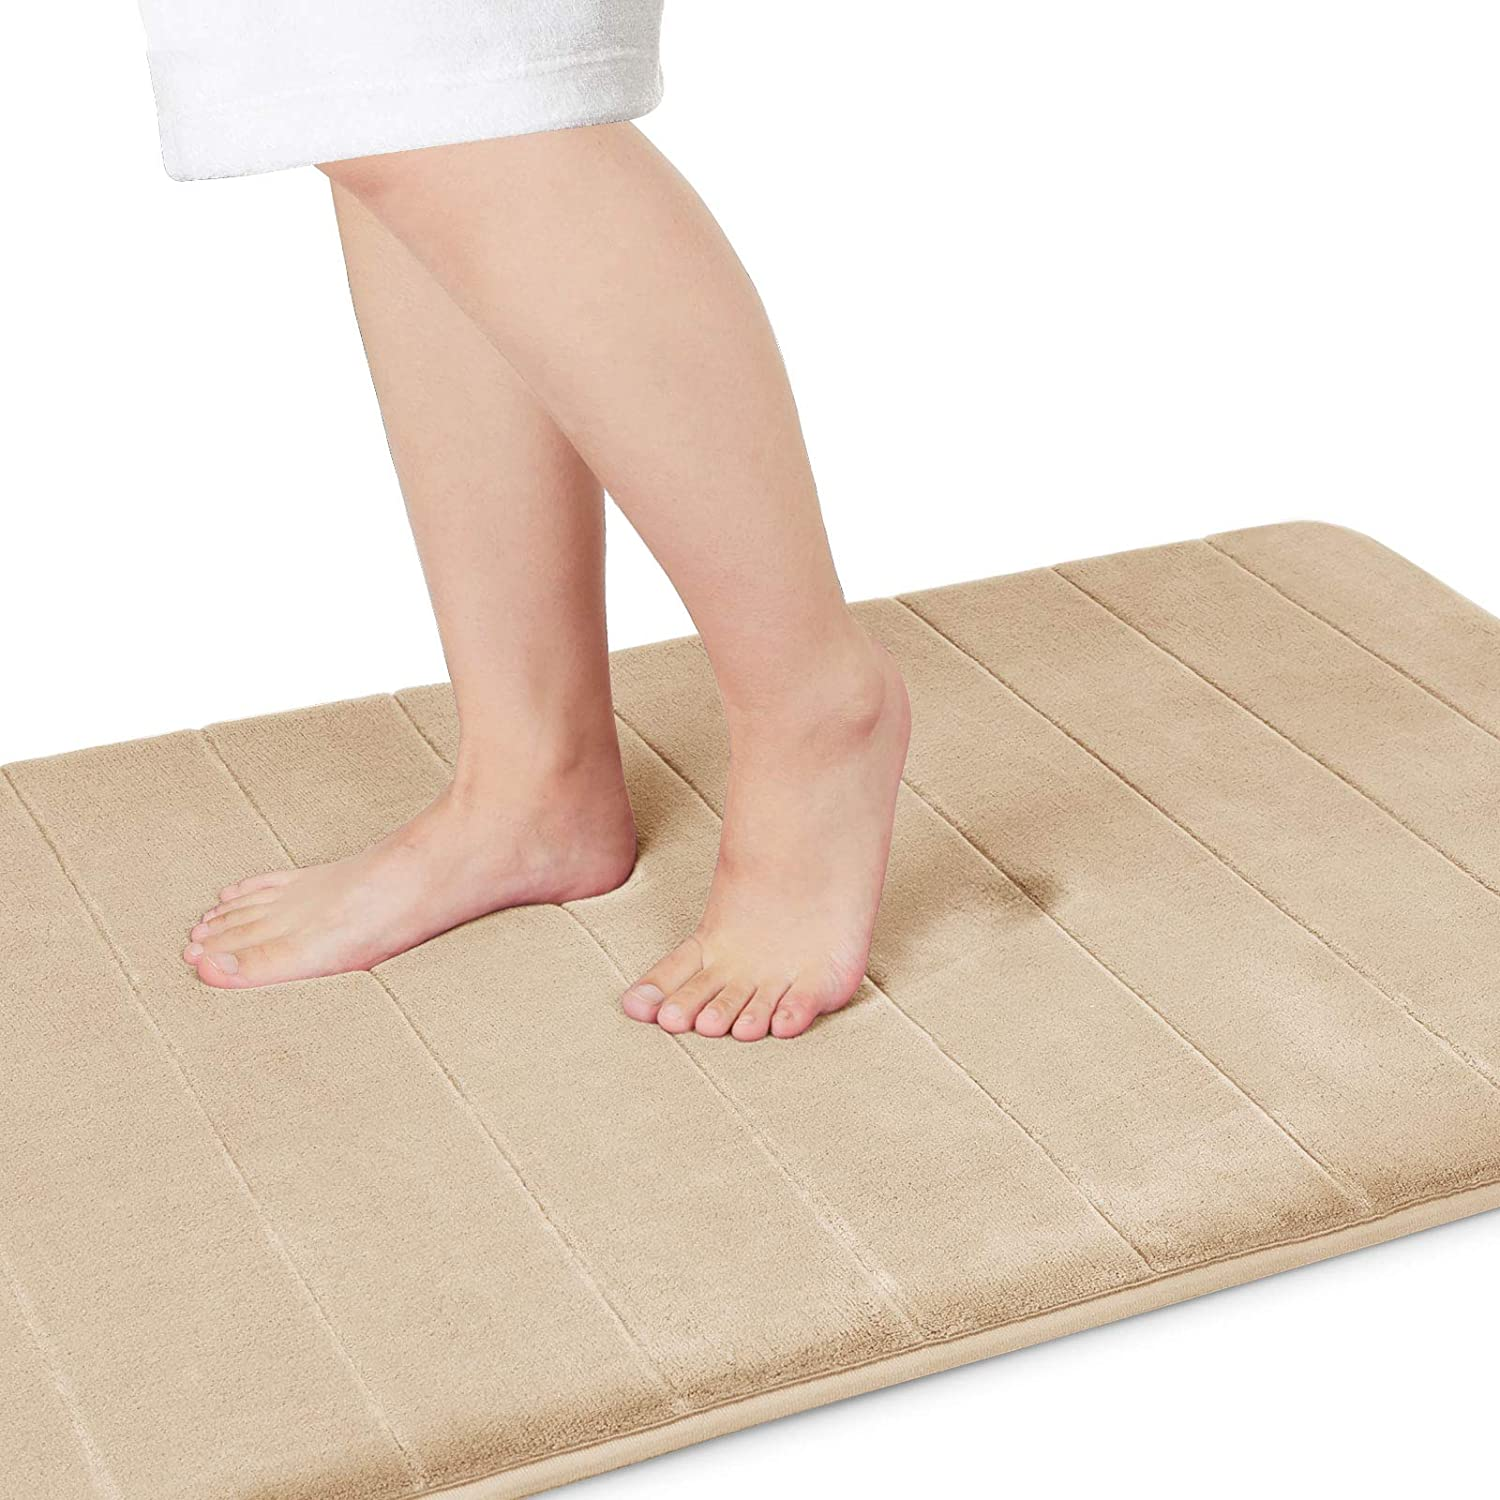 Yimobra Memory Foam Bath Mat Large Size 44.1 x 24 Inches, Comfortable, Soft, Super Water Absorption, Machine Wash, Non-Slip, Thick, Easier to Dry for Bathroom Floor Rug, Beige